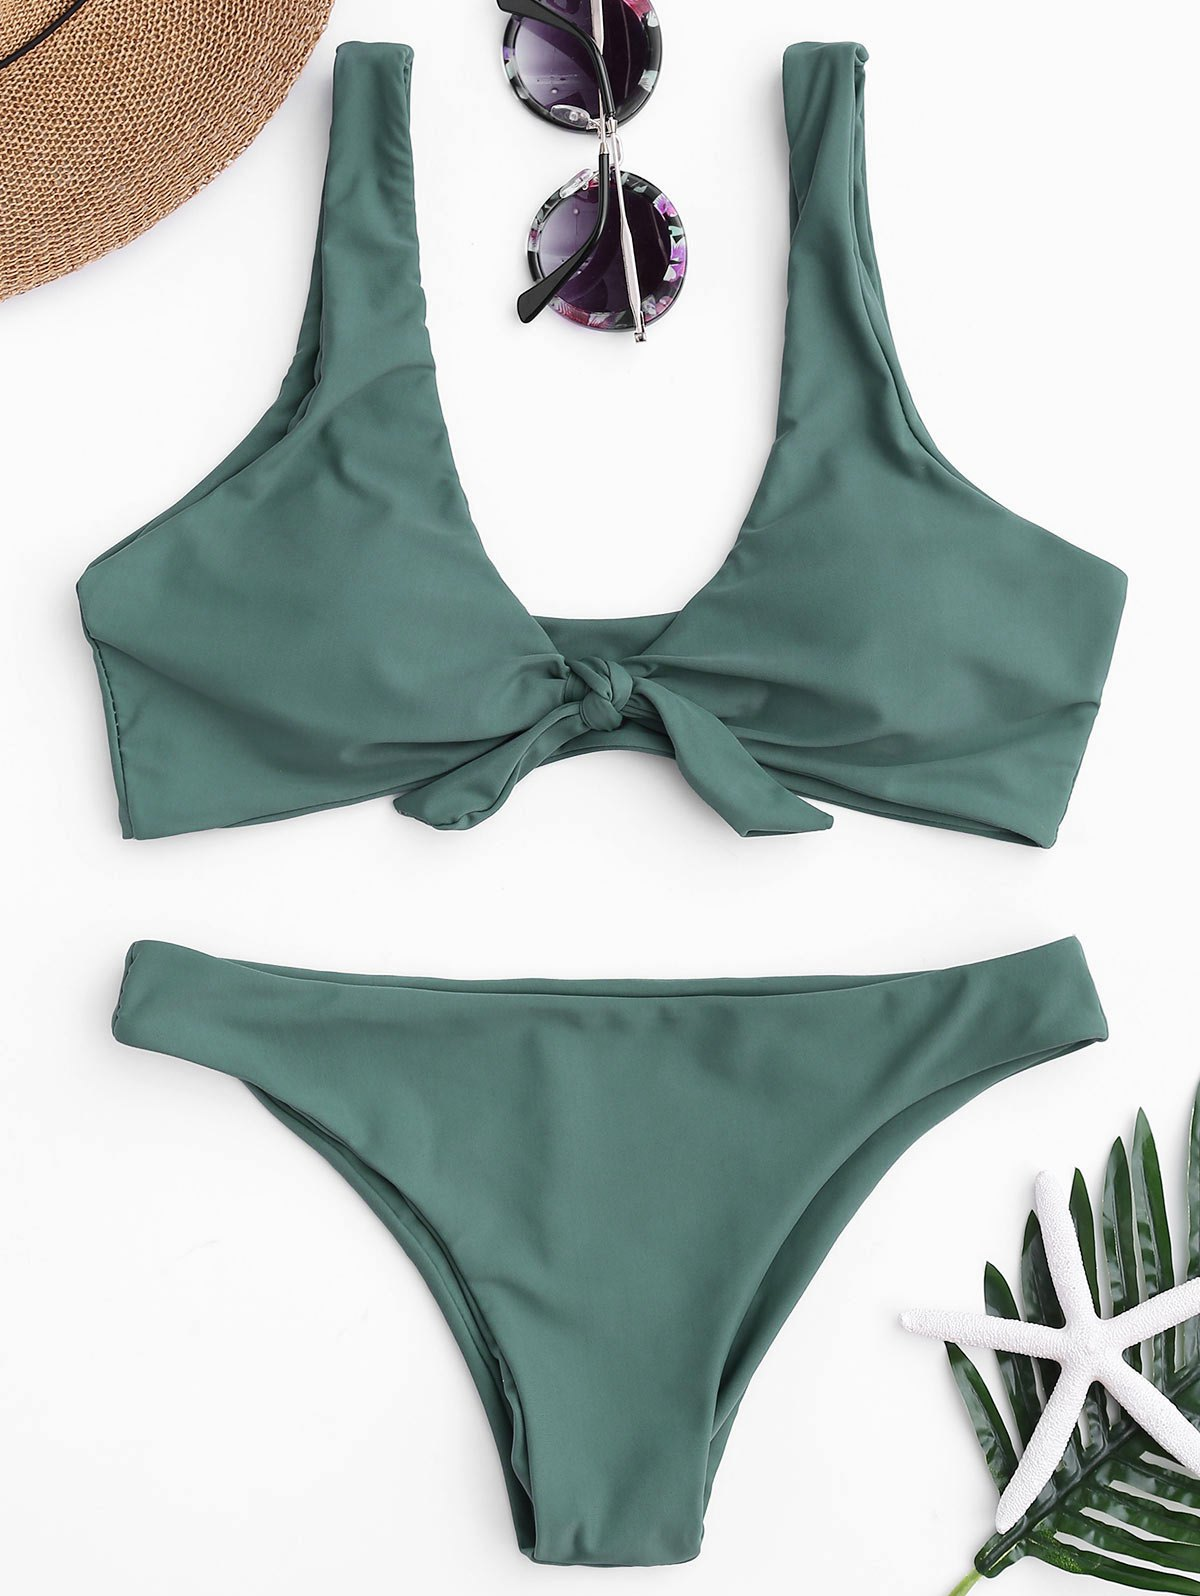 Knotted Scoop Neck Bikini SetWOMEN<br><br>Size: L; Color: LAKE GREEN; Swimwear Type: Bikini; Gender: For Women; Material: Nylon,Polyester,Spandex; Bra Style: Padded; Support Type: Wire Free; Neckline: Scoop Neck; Pattern Type: Solid; Waist: Low Waisted; Elasticity: Elastic; Weight: 0.2000kg; Package Contents: 1 x Top  1 x Bottoms;